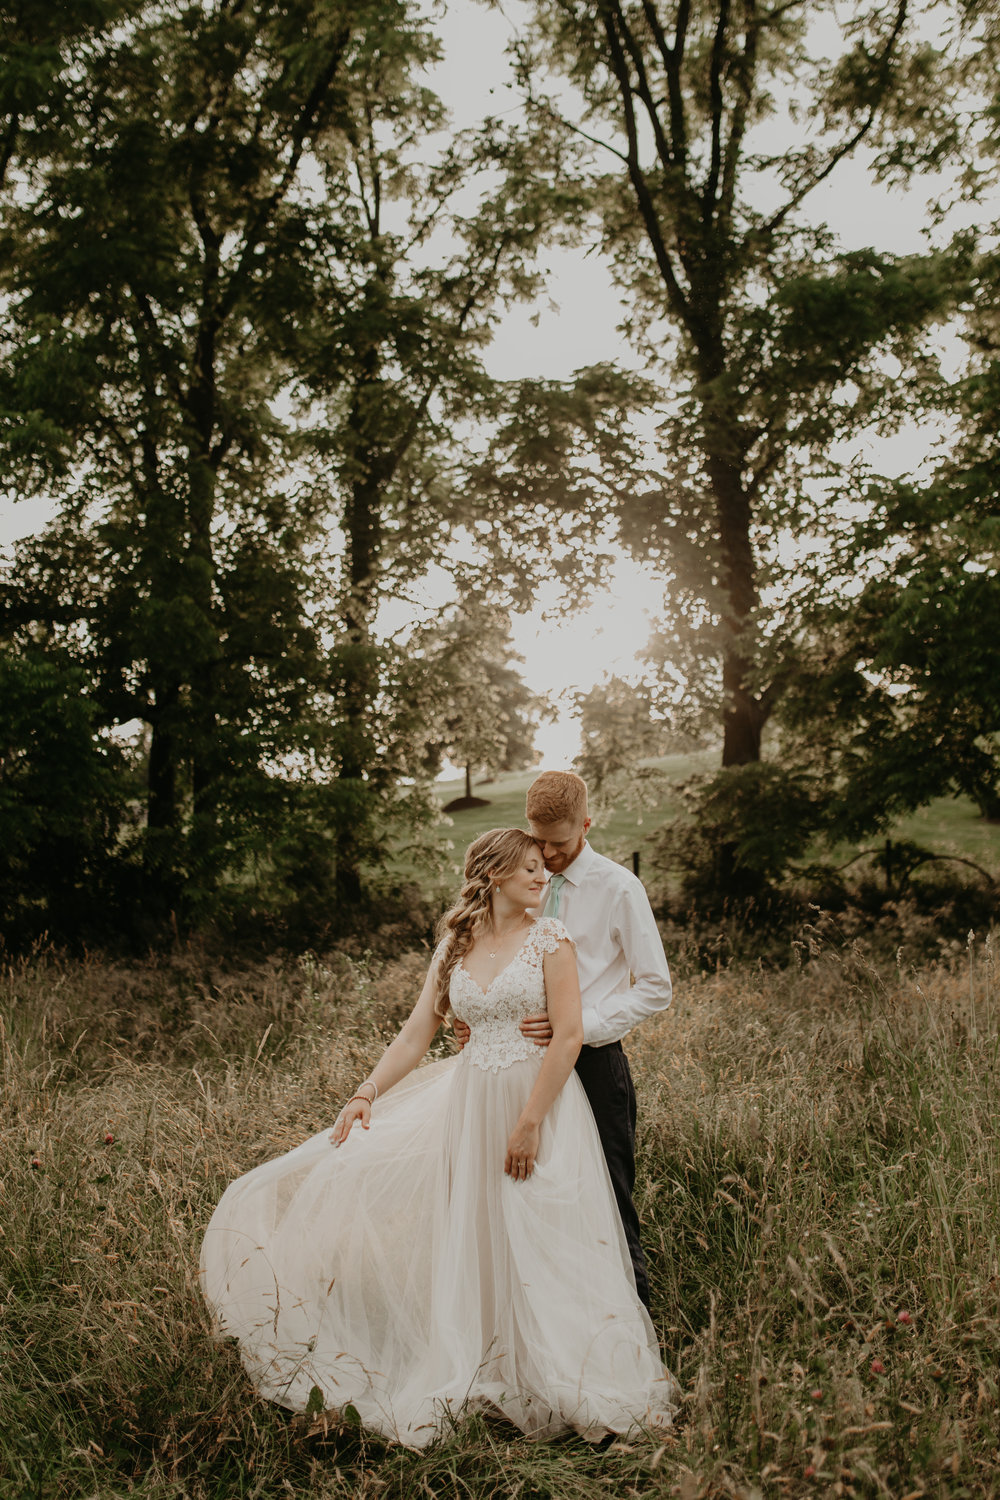 Nicole-Daacke-Photography-pennsylvania-laid-back-outside-backyard-wedding-family-summer-june-maryland-barefoot-bride-woodland-trees-sunset-couple-79.jpg